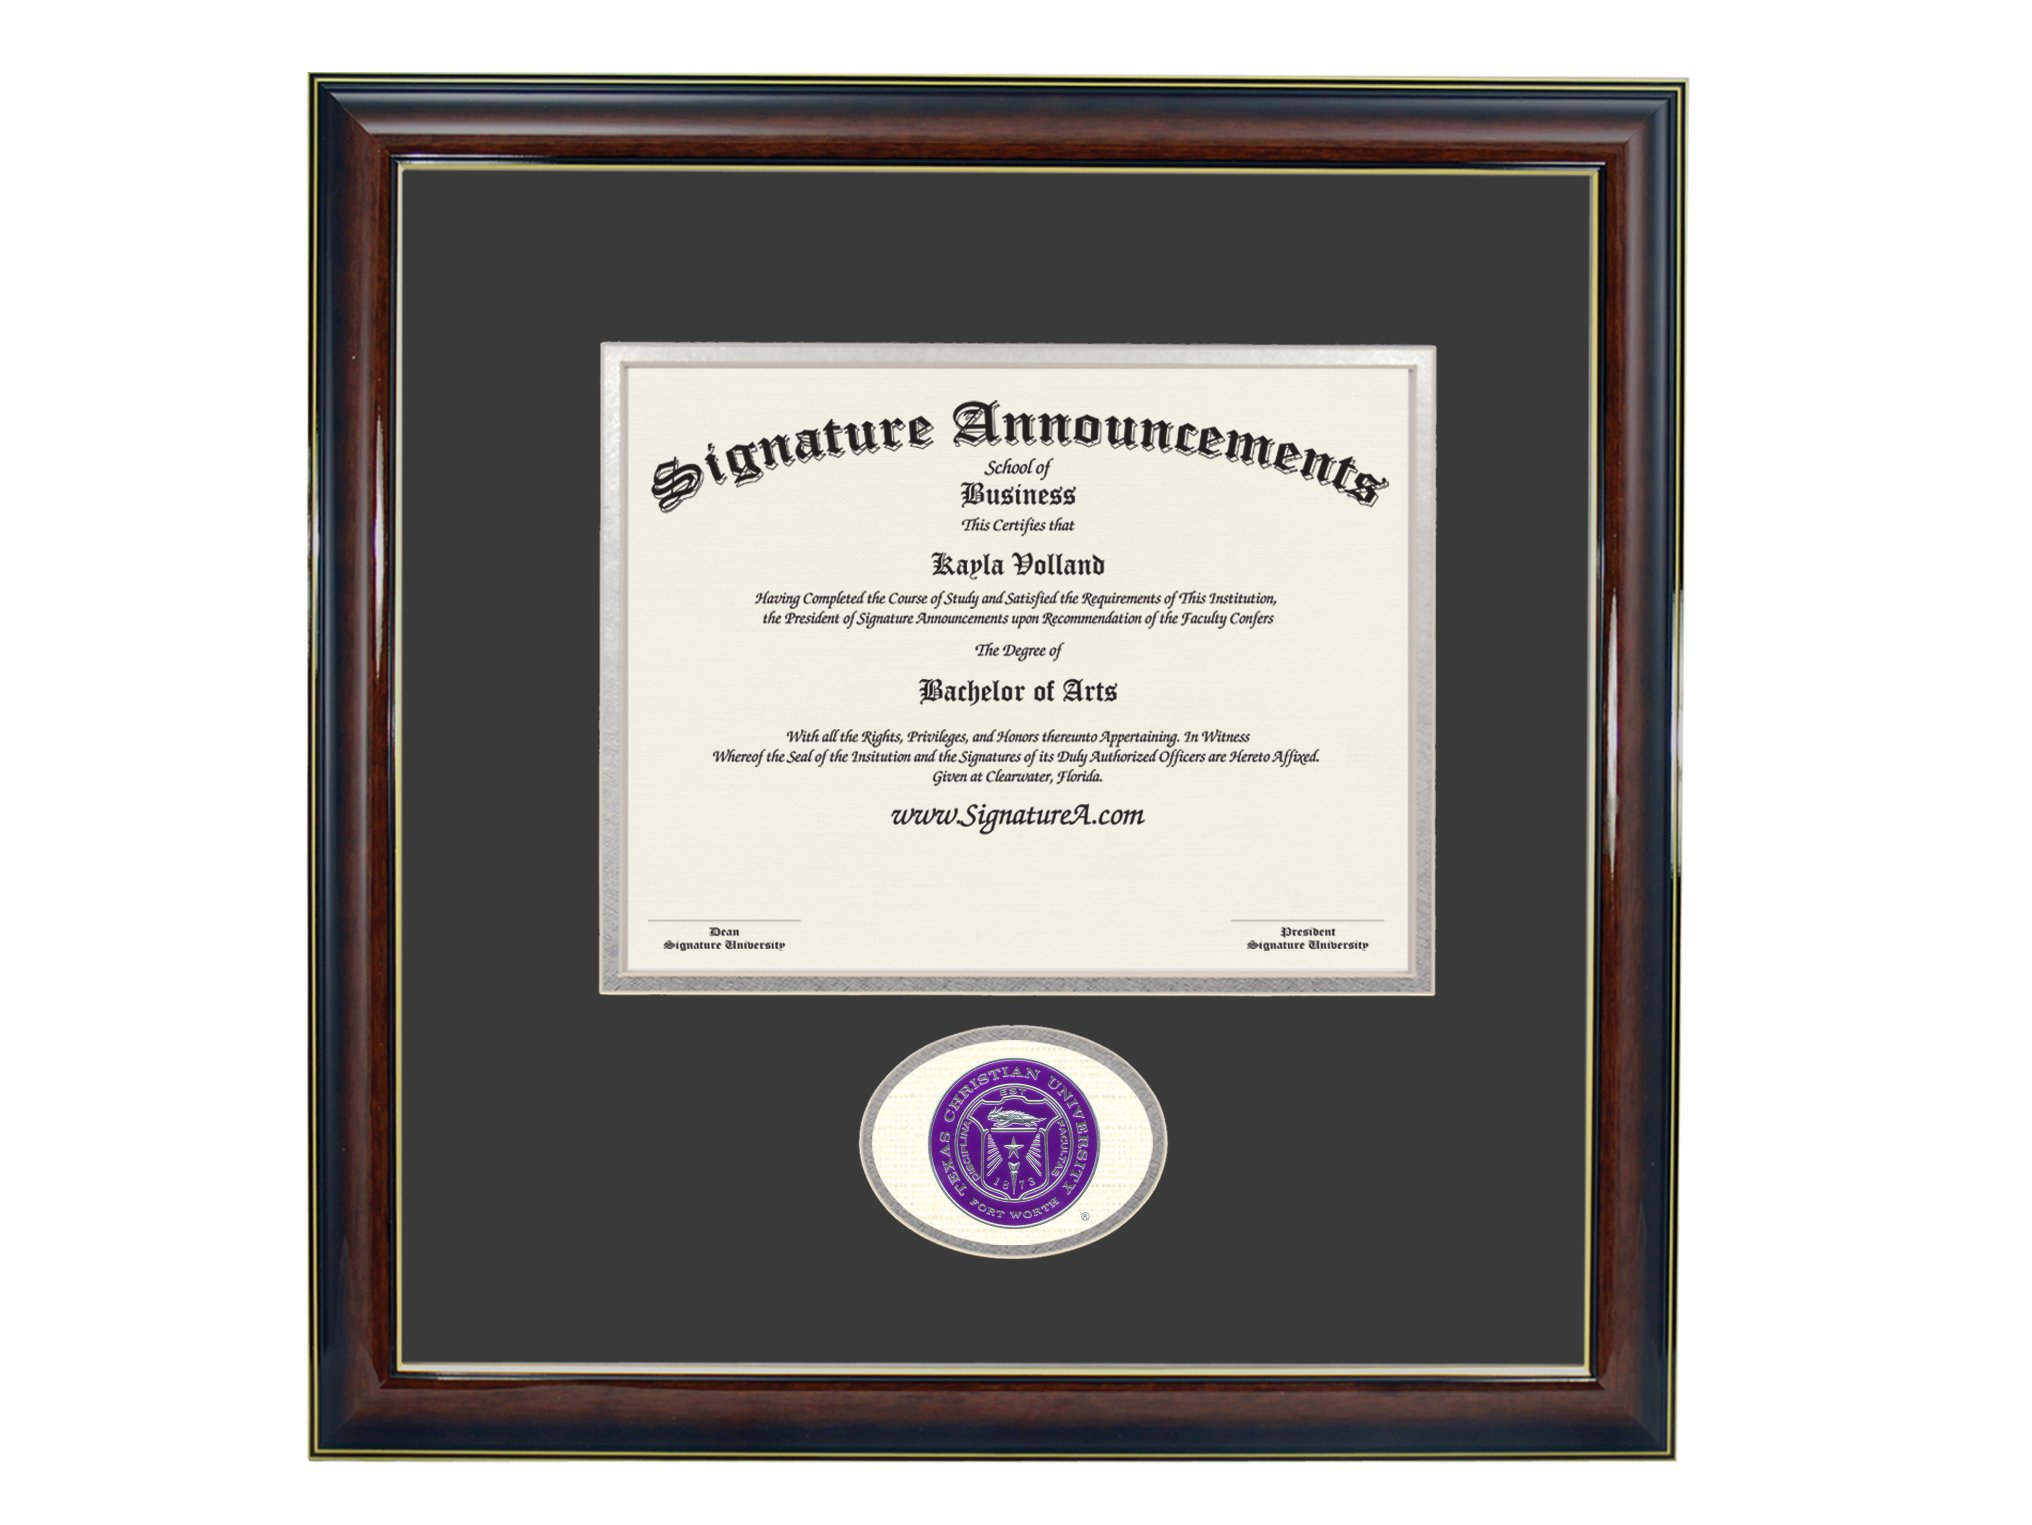 Signature Announcements Texas Christian University (TCU) Undergraduate and Graduate/Professional/Doctor Graduation Diploma Frame with Sculpted Foil Seal (Gloss Mahogany w/Gold Accent, 16 x 16) by Signature Announcements